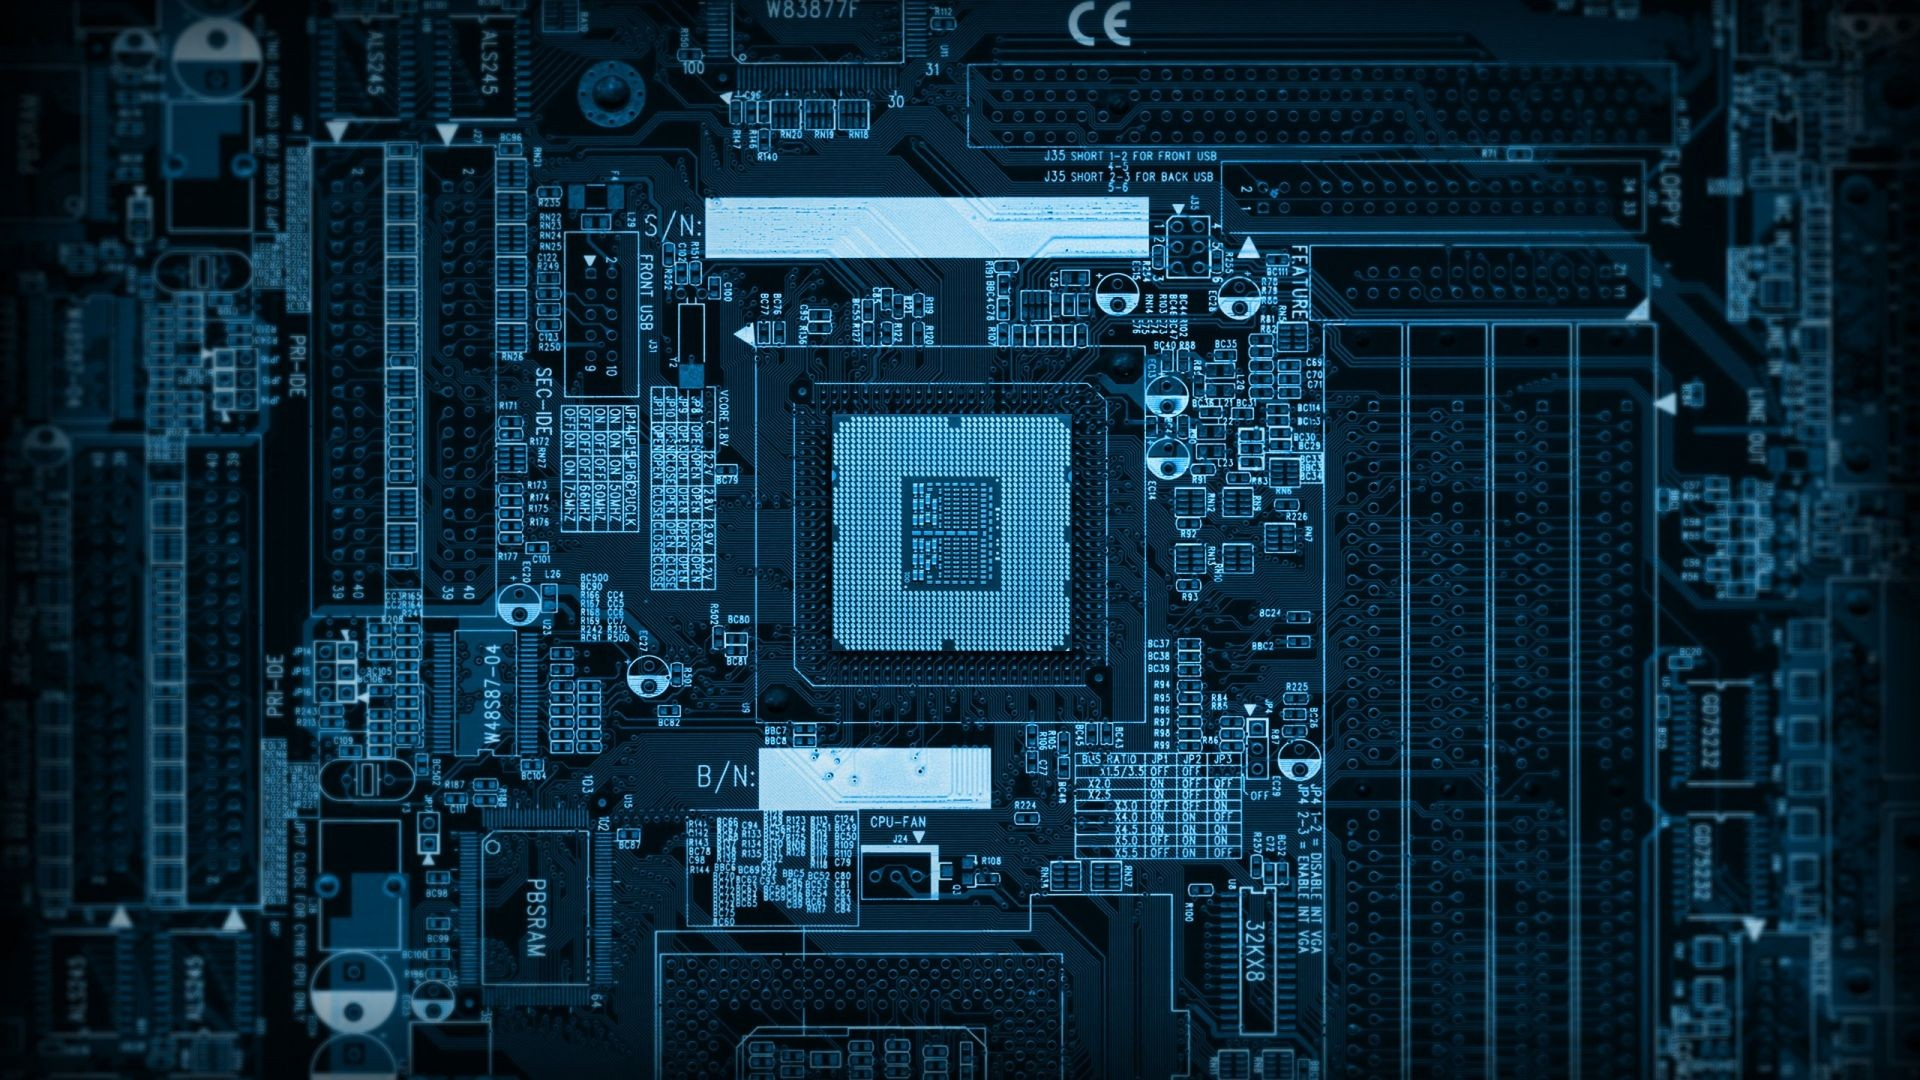 Technology Pcb Wallpaper 1920x1080 Technology Pcb Motherboard 1920x1080